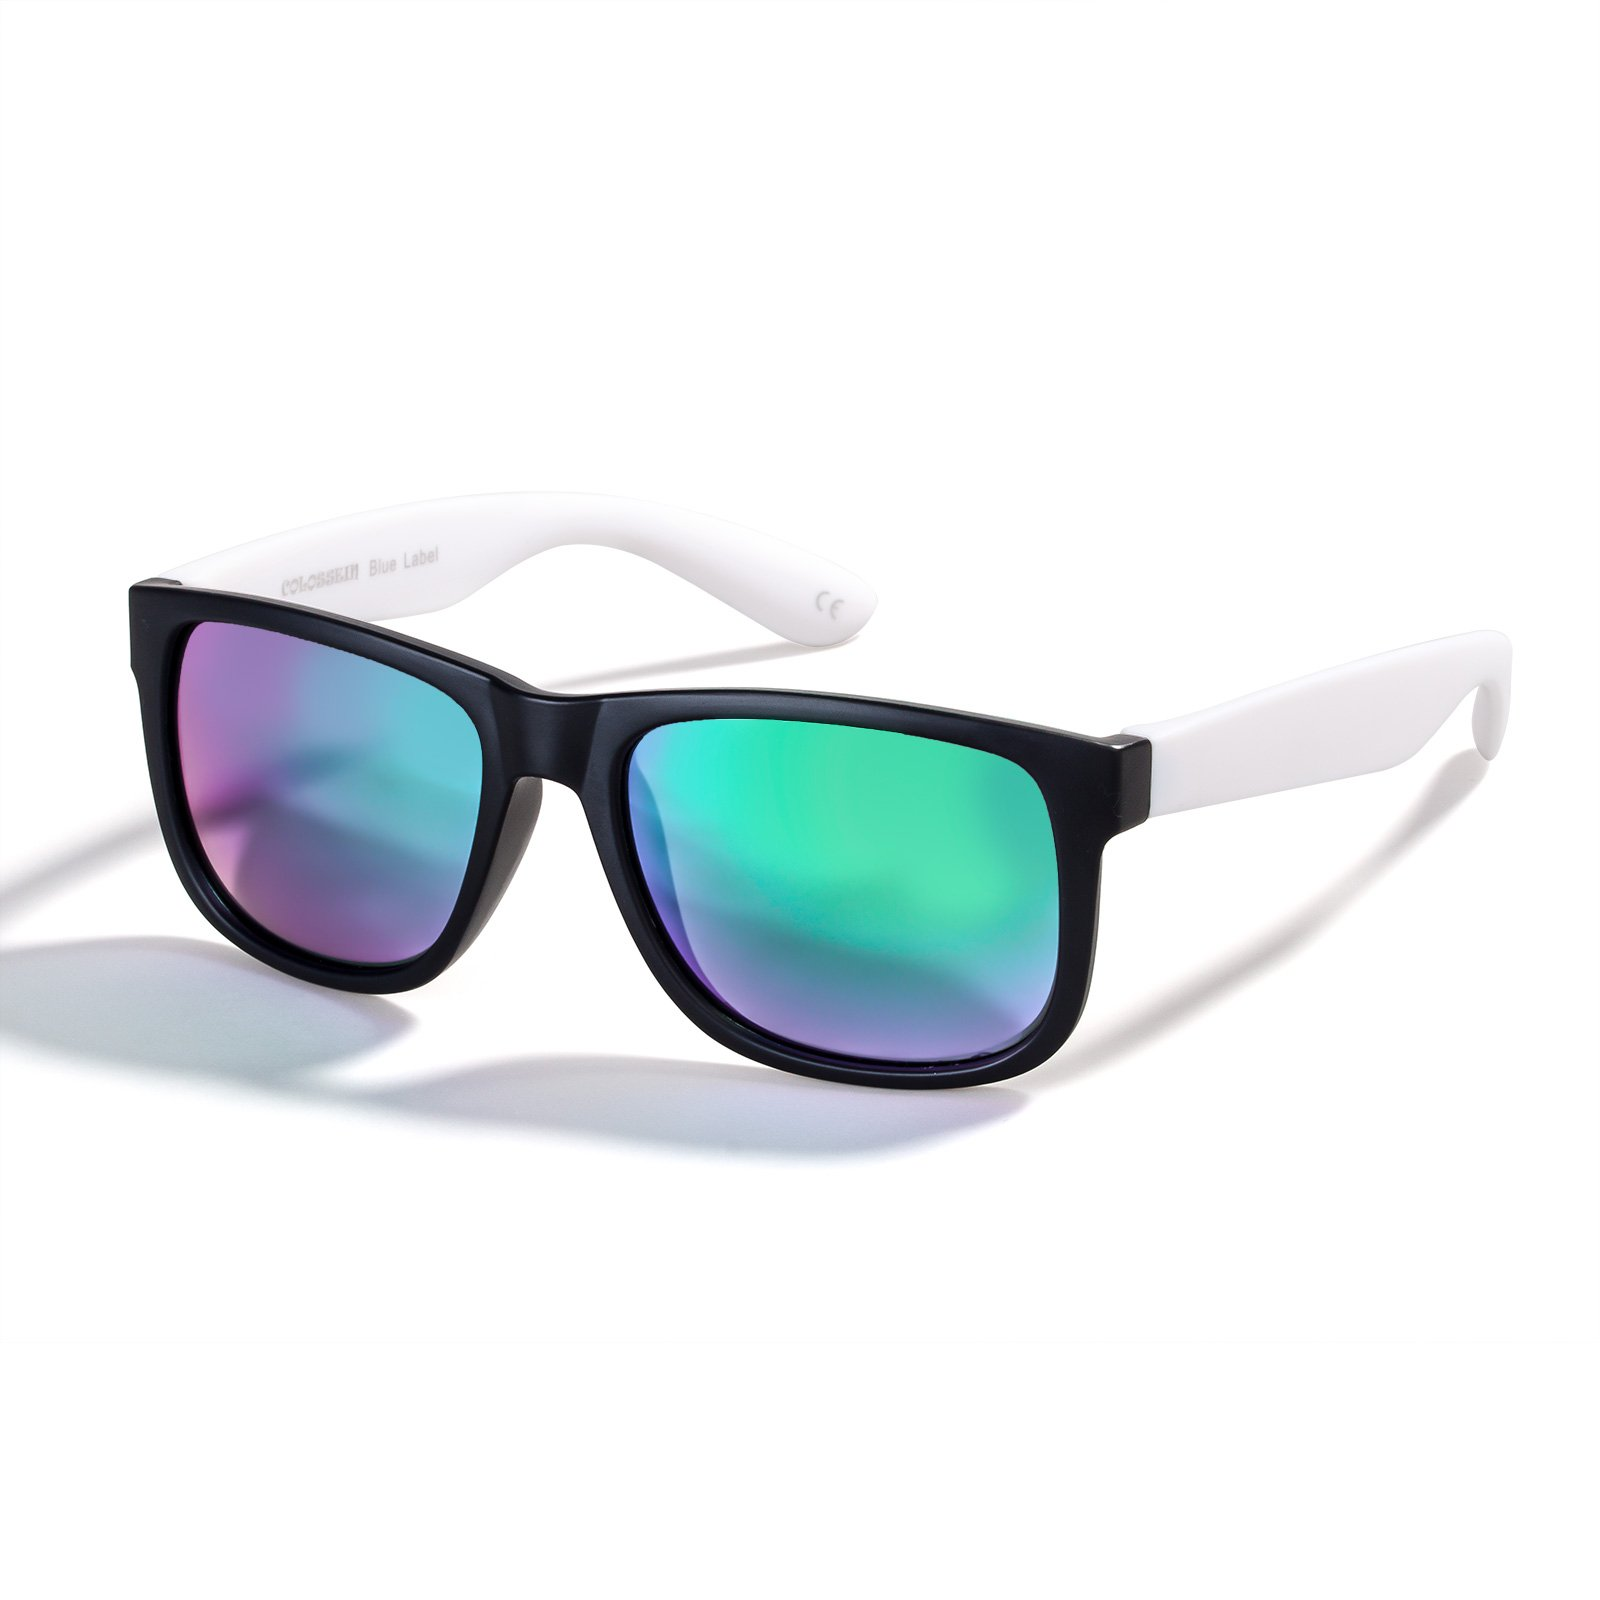 Colossein Men Metal Frame Flat Green Lens Polarized Oversized Sunglasses by COLOSSEIN